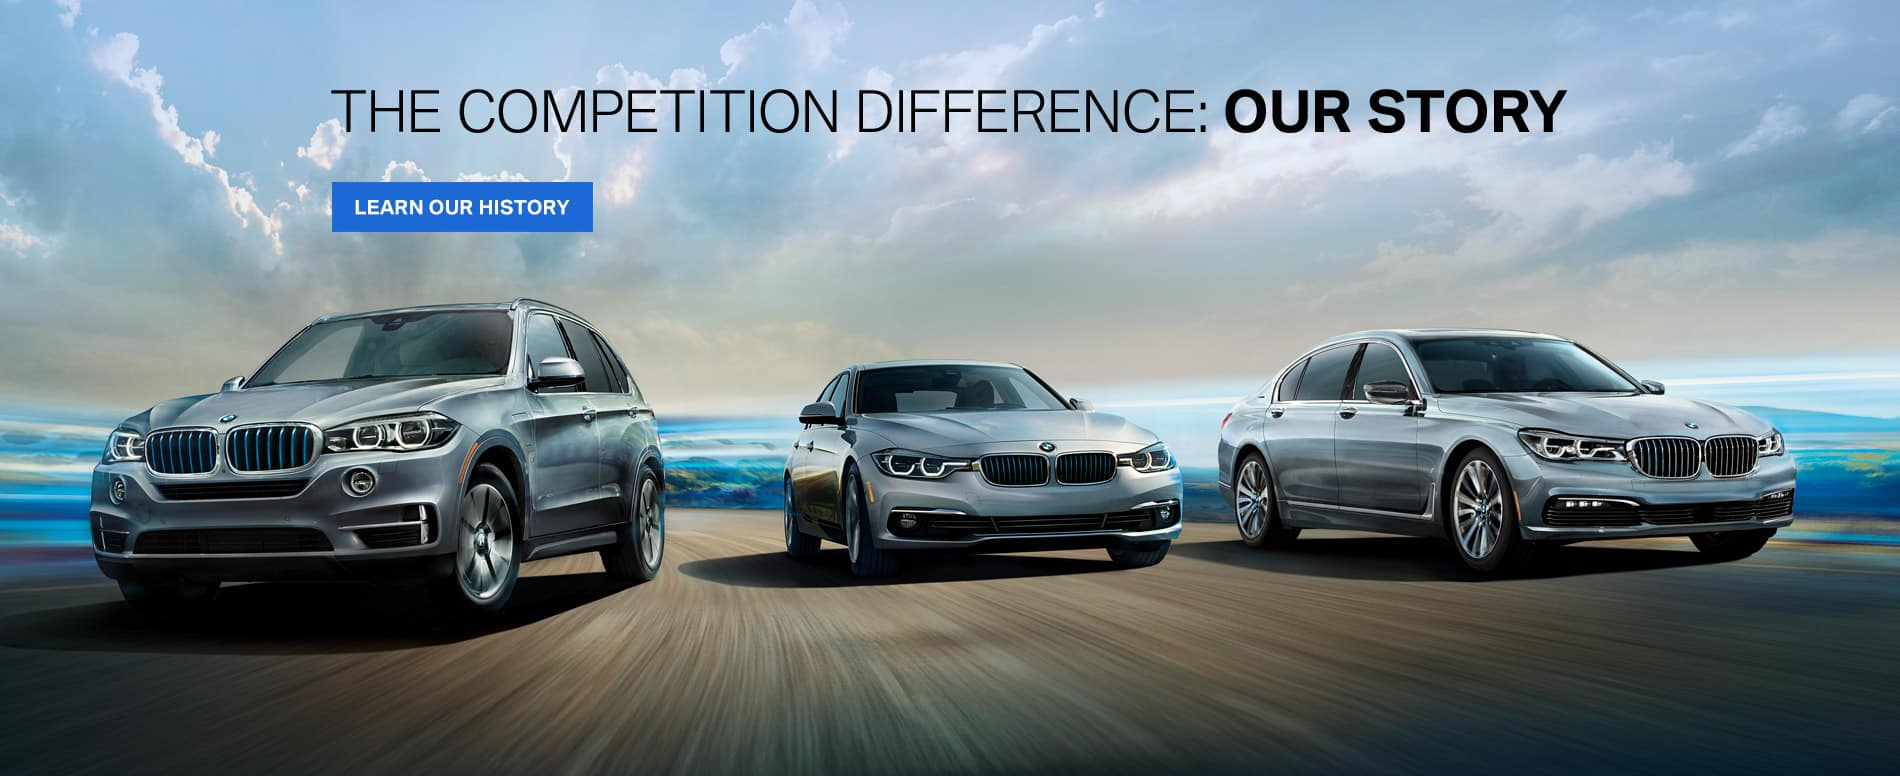 HomepageSlider-BMW-Competition-Difference-Our-Story